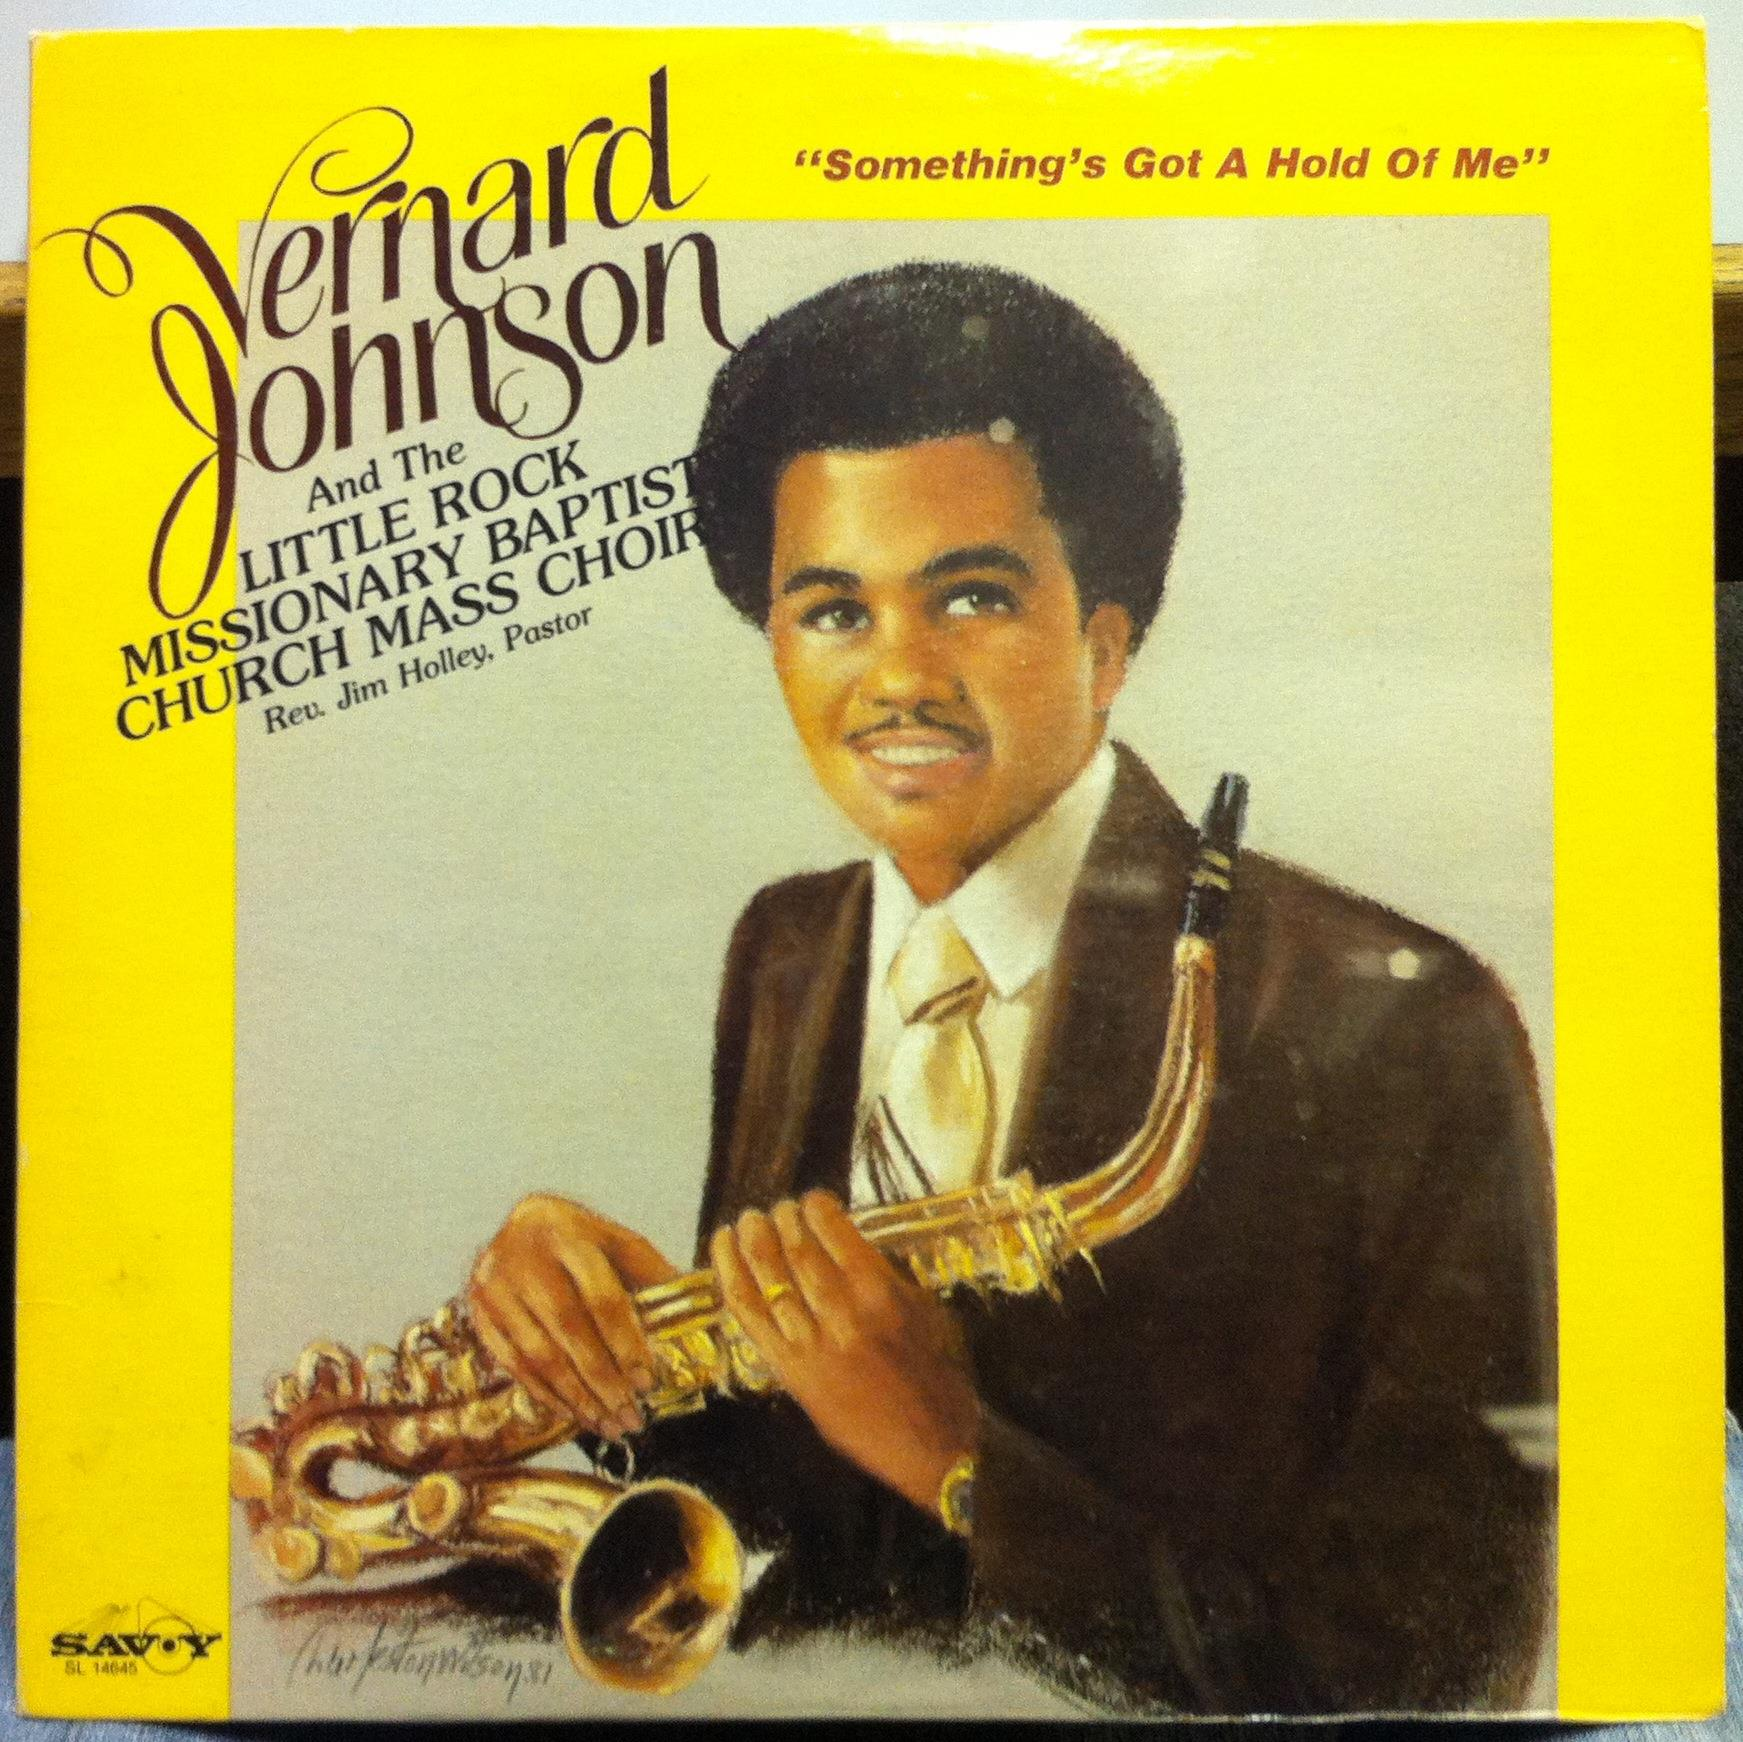 Brother Vernard Johnson Presents Ray Manning Singers, The - S/T